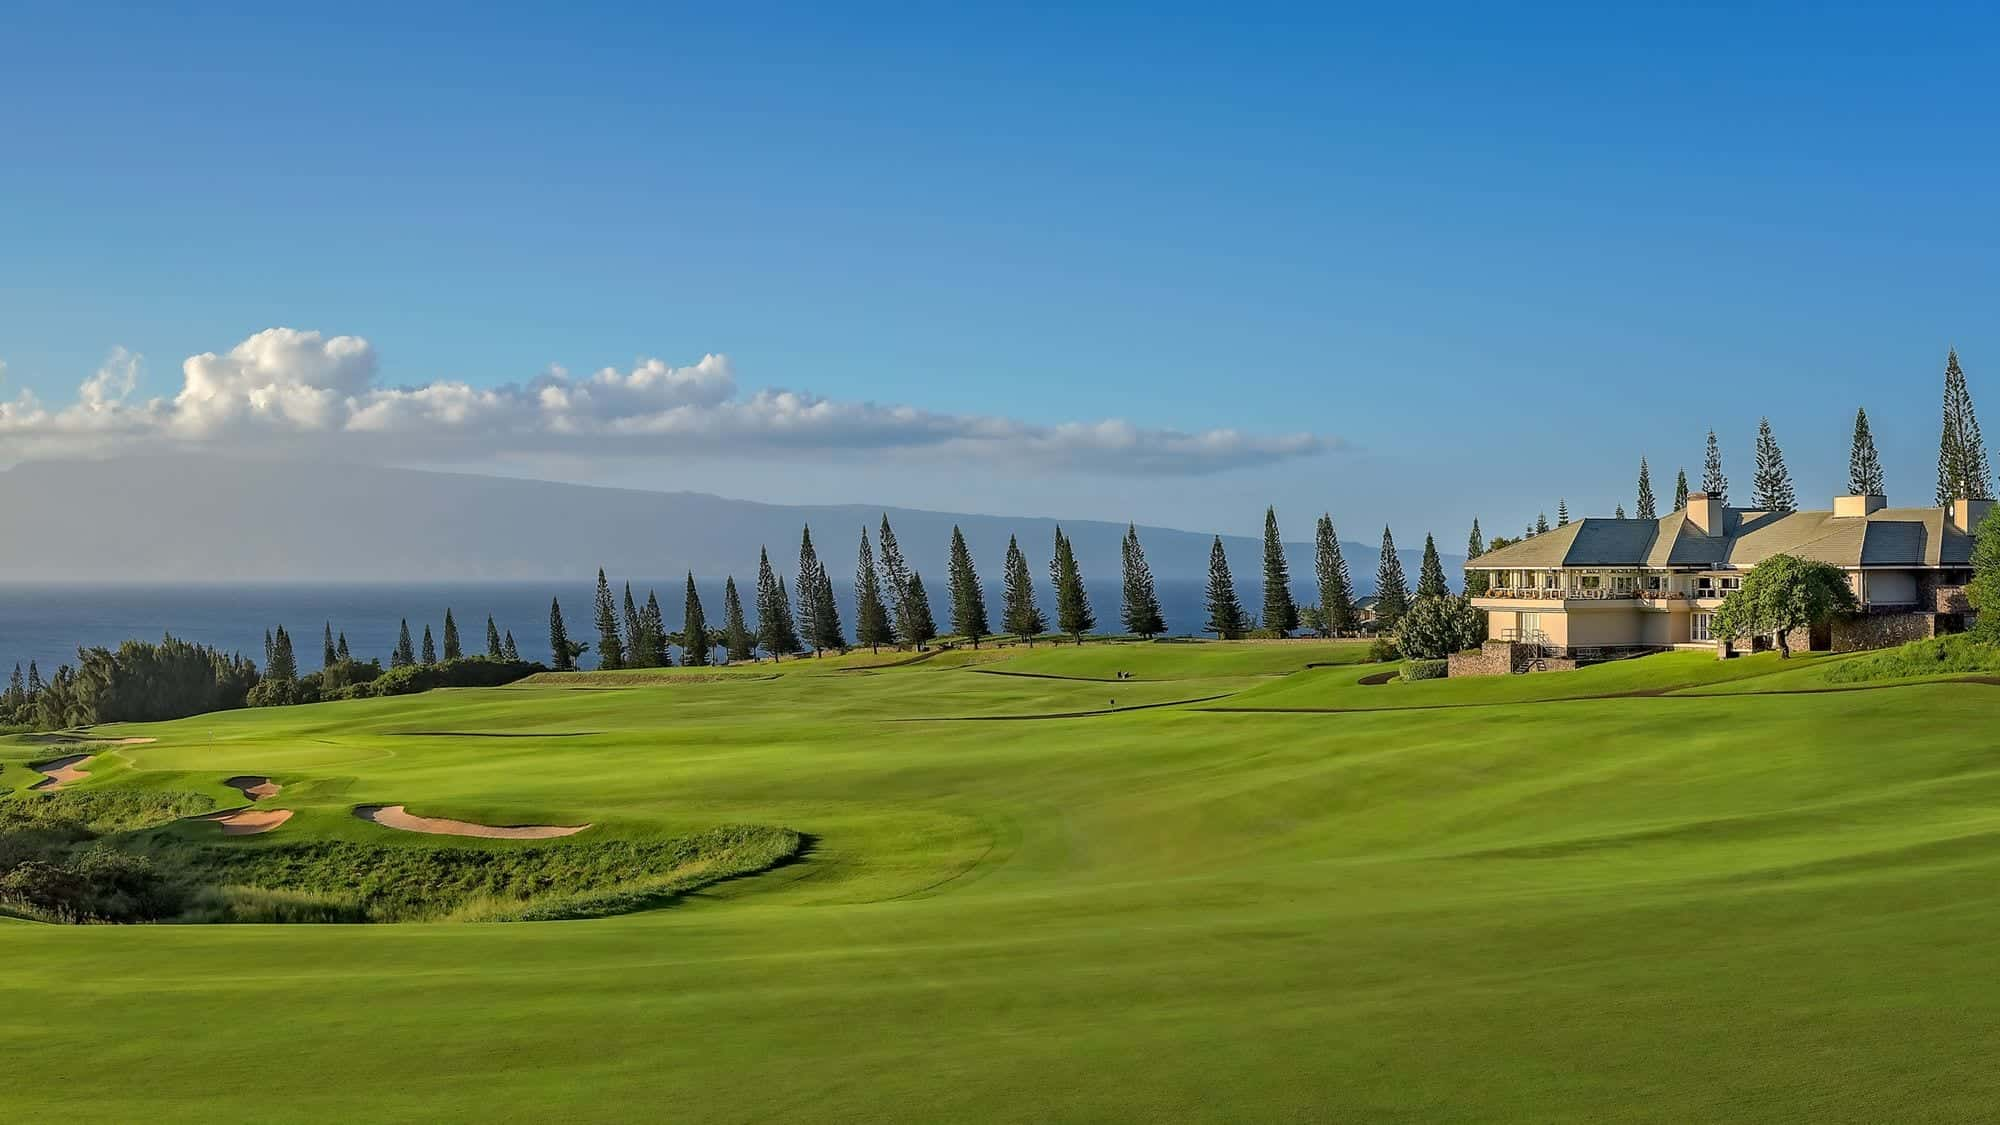 A view of a fairway and the clubhouse at Kapalua Plantation Course in Maui, Hawaii.